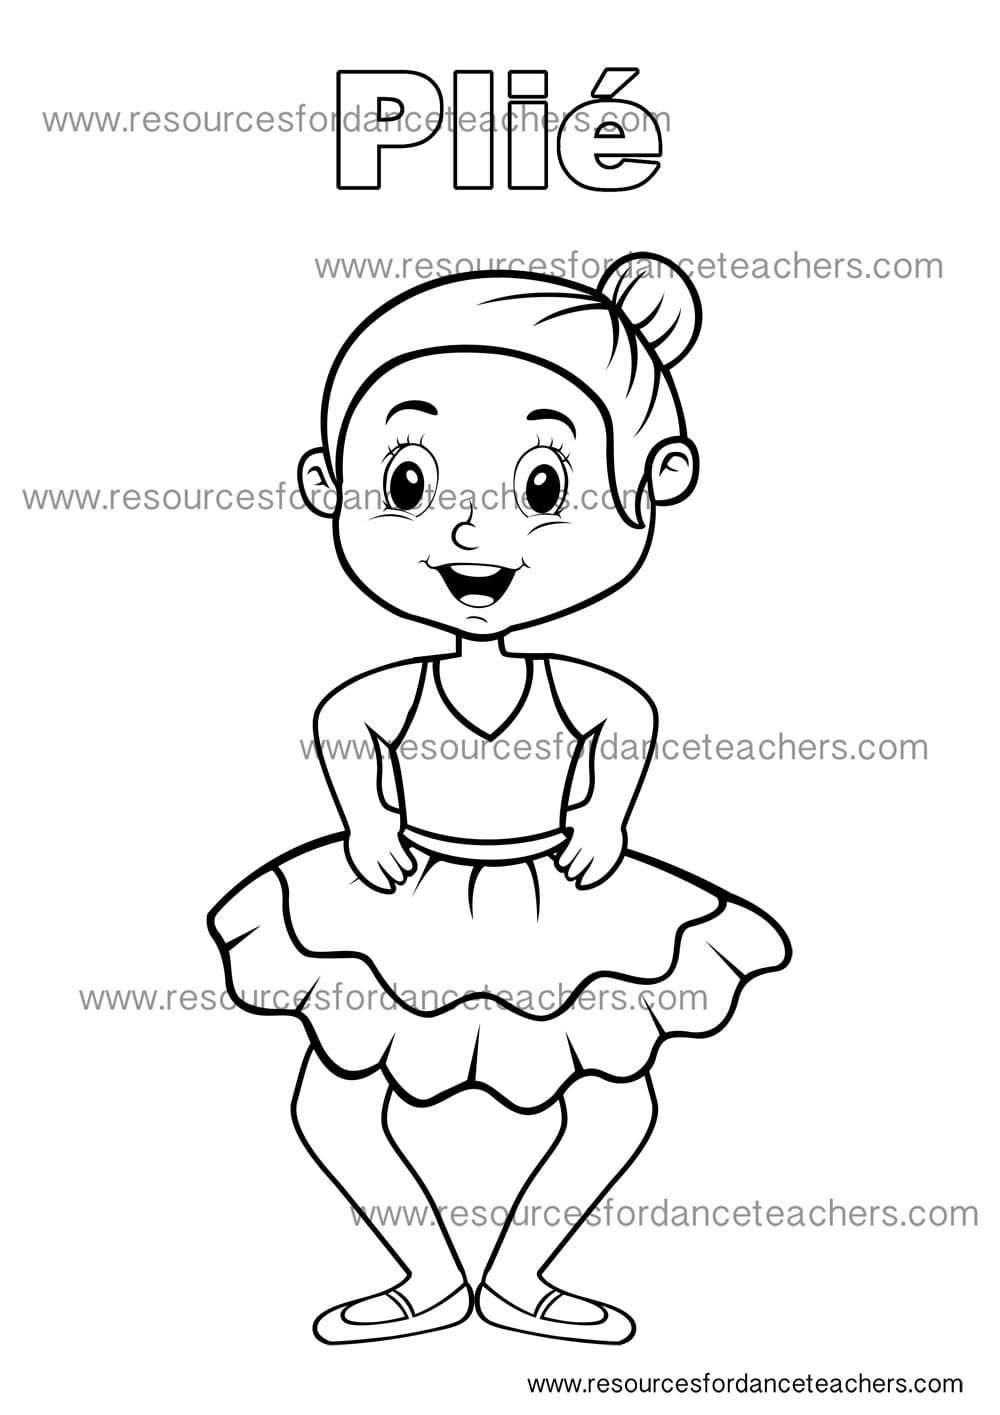 Preschool Dance coloring pages